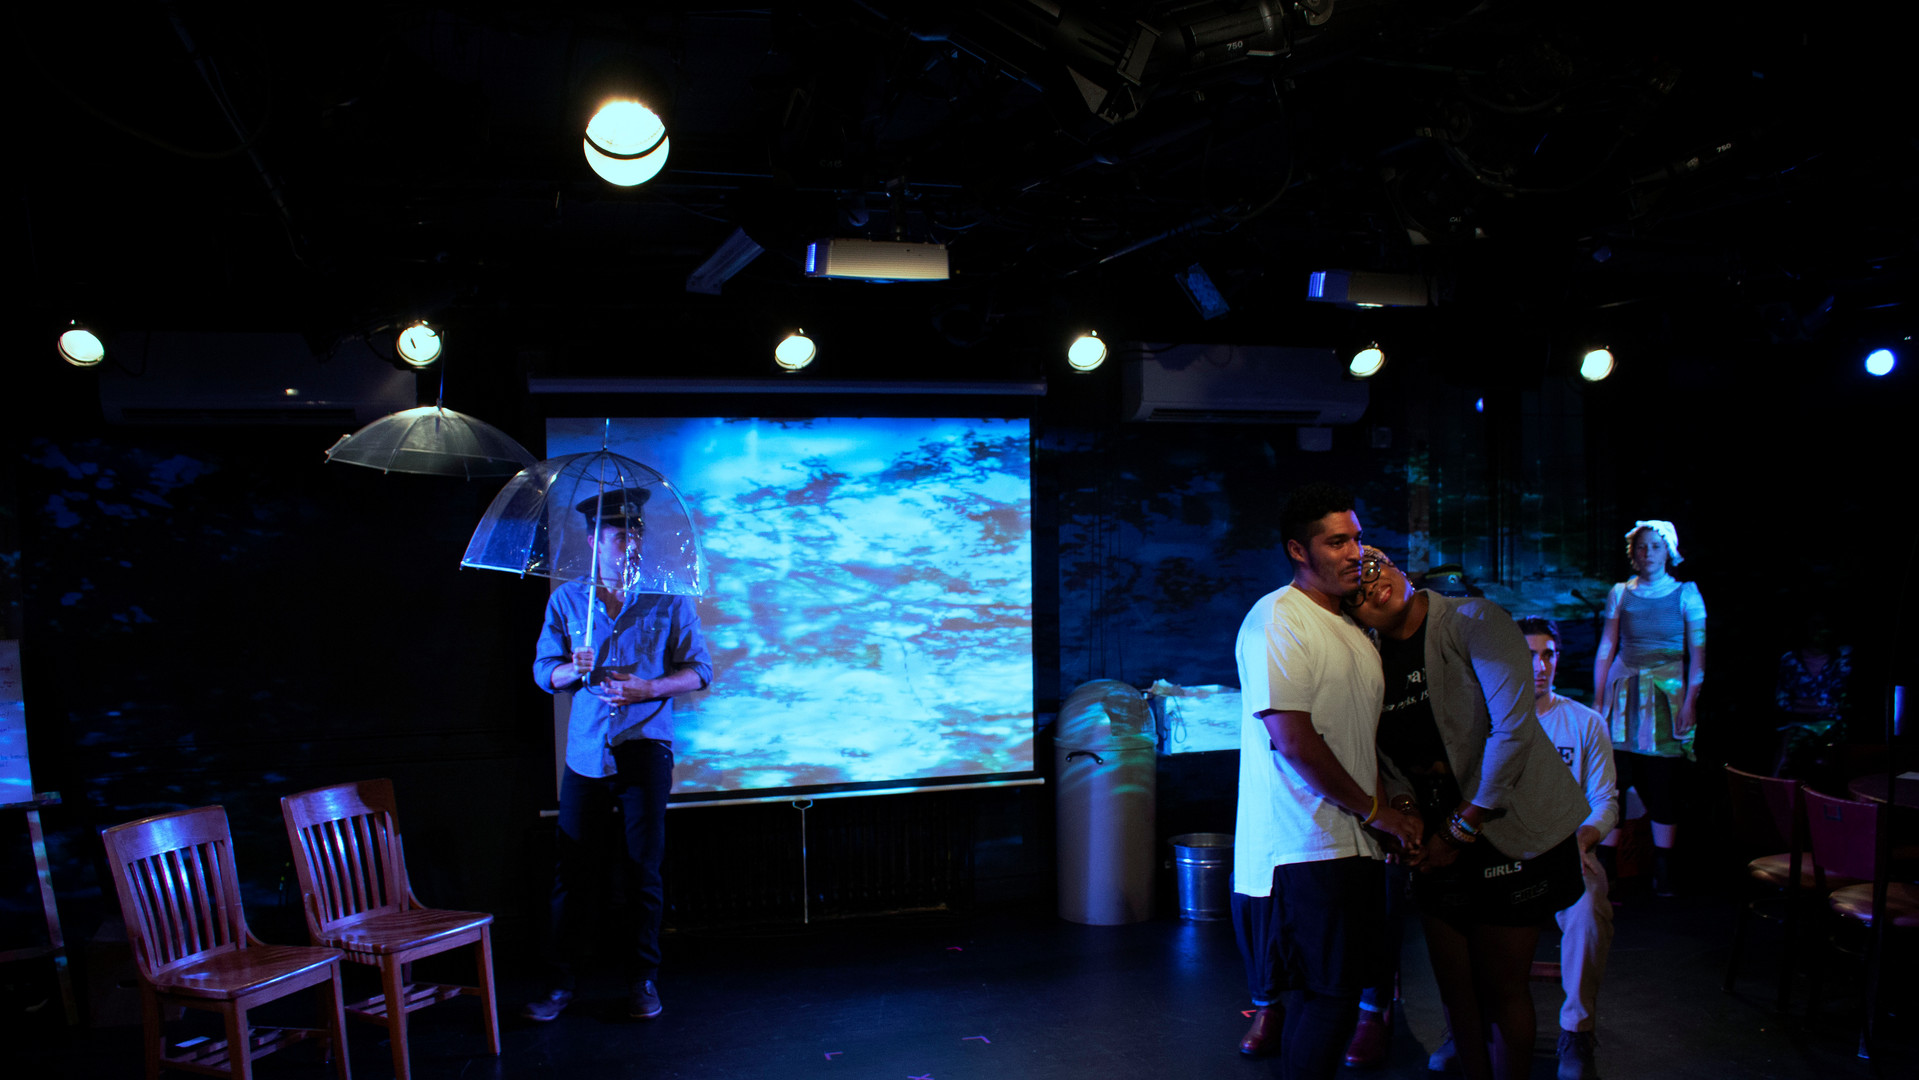 Theatre Projection Design We Are Proud to Present Compact_IMG_2487.jpg